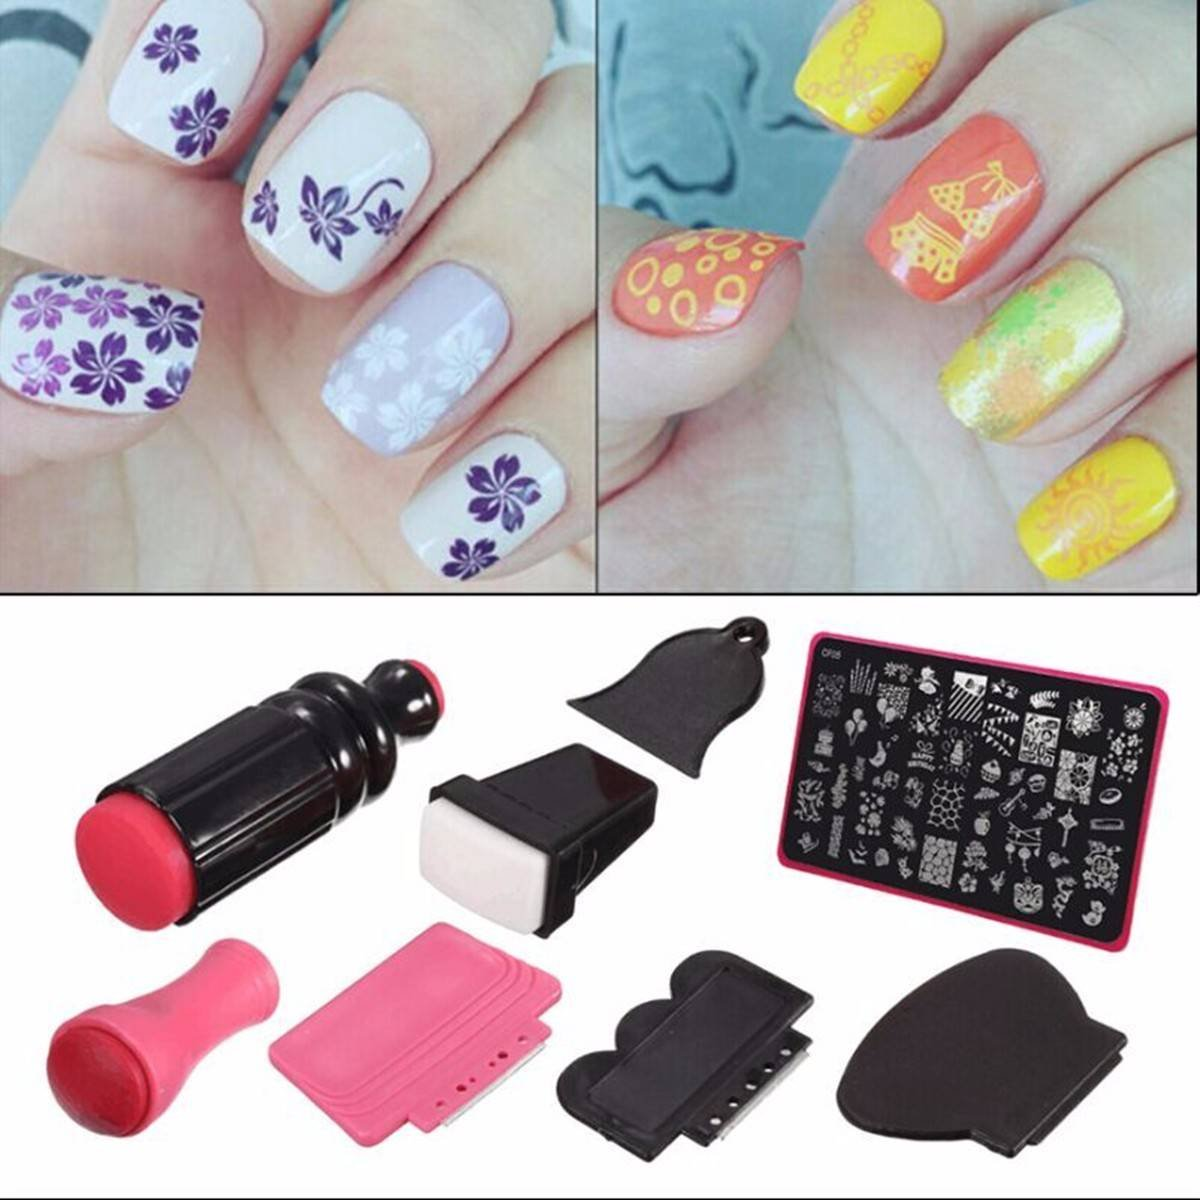 Amazon nail art stamperdancingnail beauty lady nail art amazon nail art stamperdancingnail beauty lady nail art scraper stamping manicure polish plate double ended stamper image tool kit set and nail plate prinsesfo Images